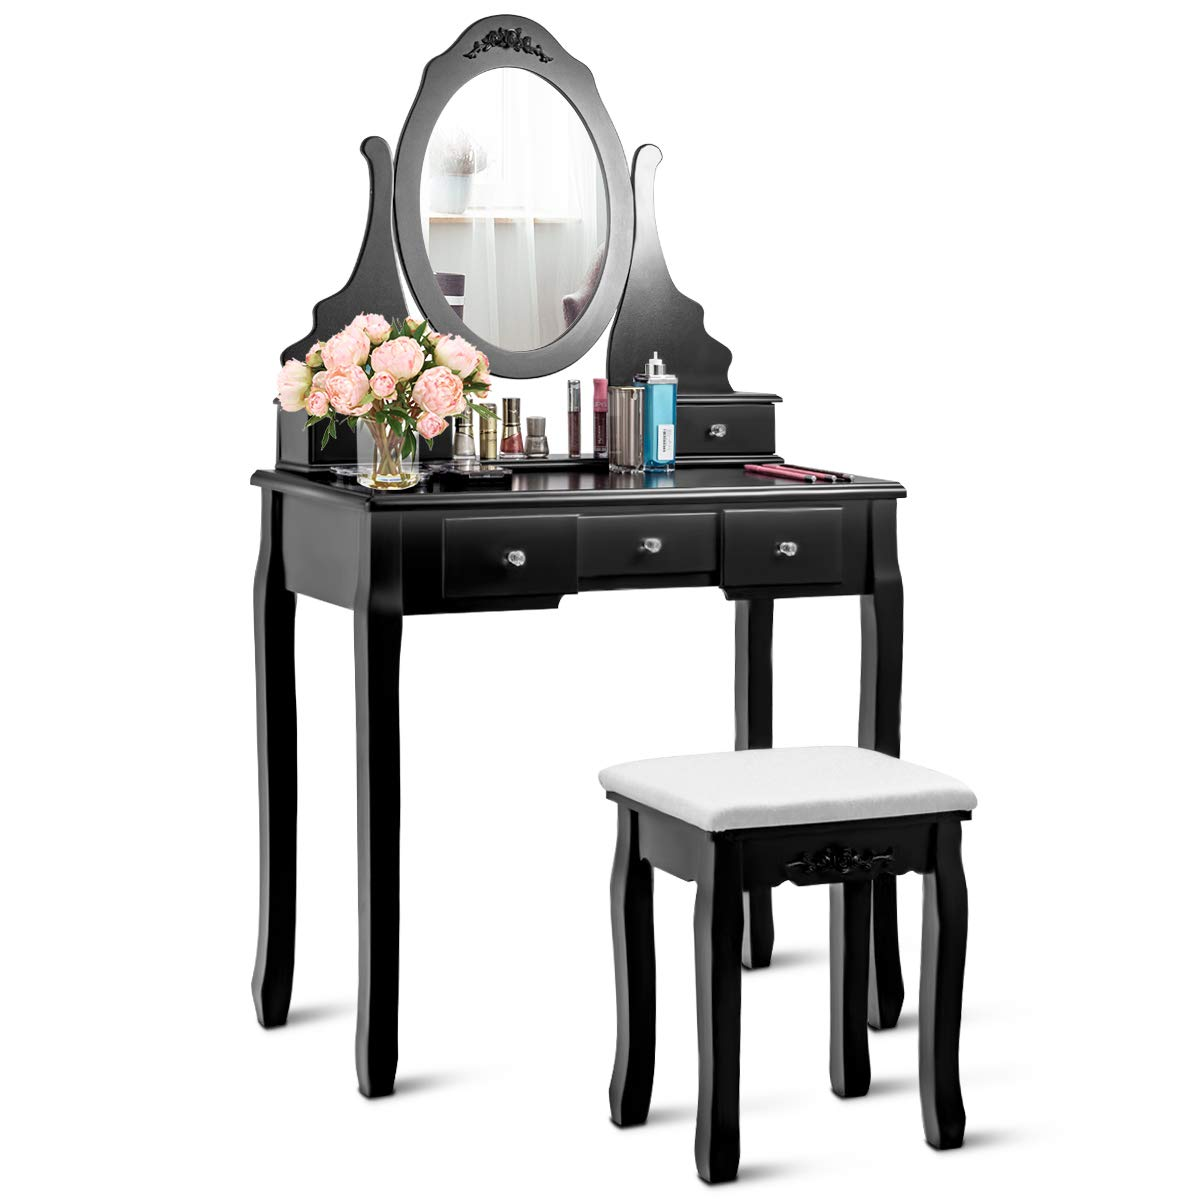 Giantex Vanity Set with Oval Mirror Cushioned Stool, Makeup Dressing Table Large Storage with 5 Drawers, Mirrored Bedroom Vanities Makeup Table for Kids Girls Women, Easy Assembly, Black